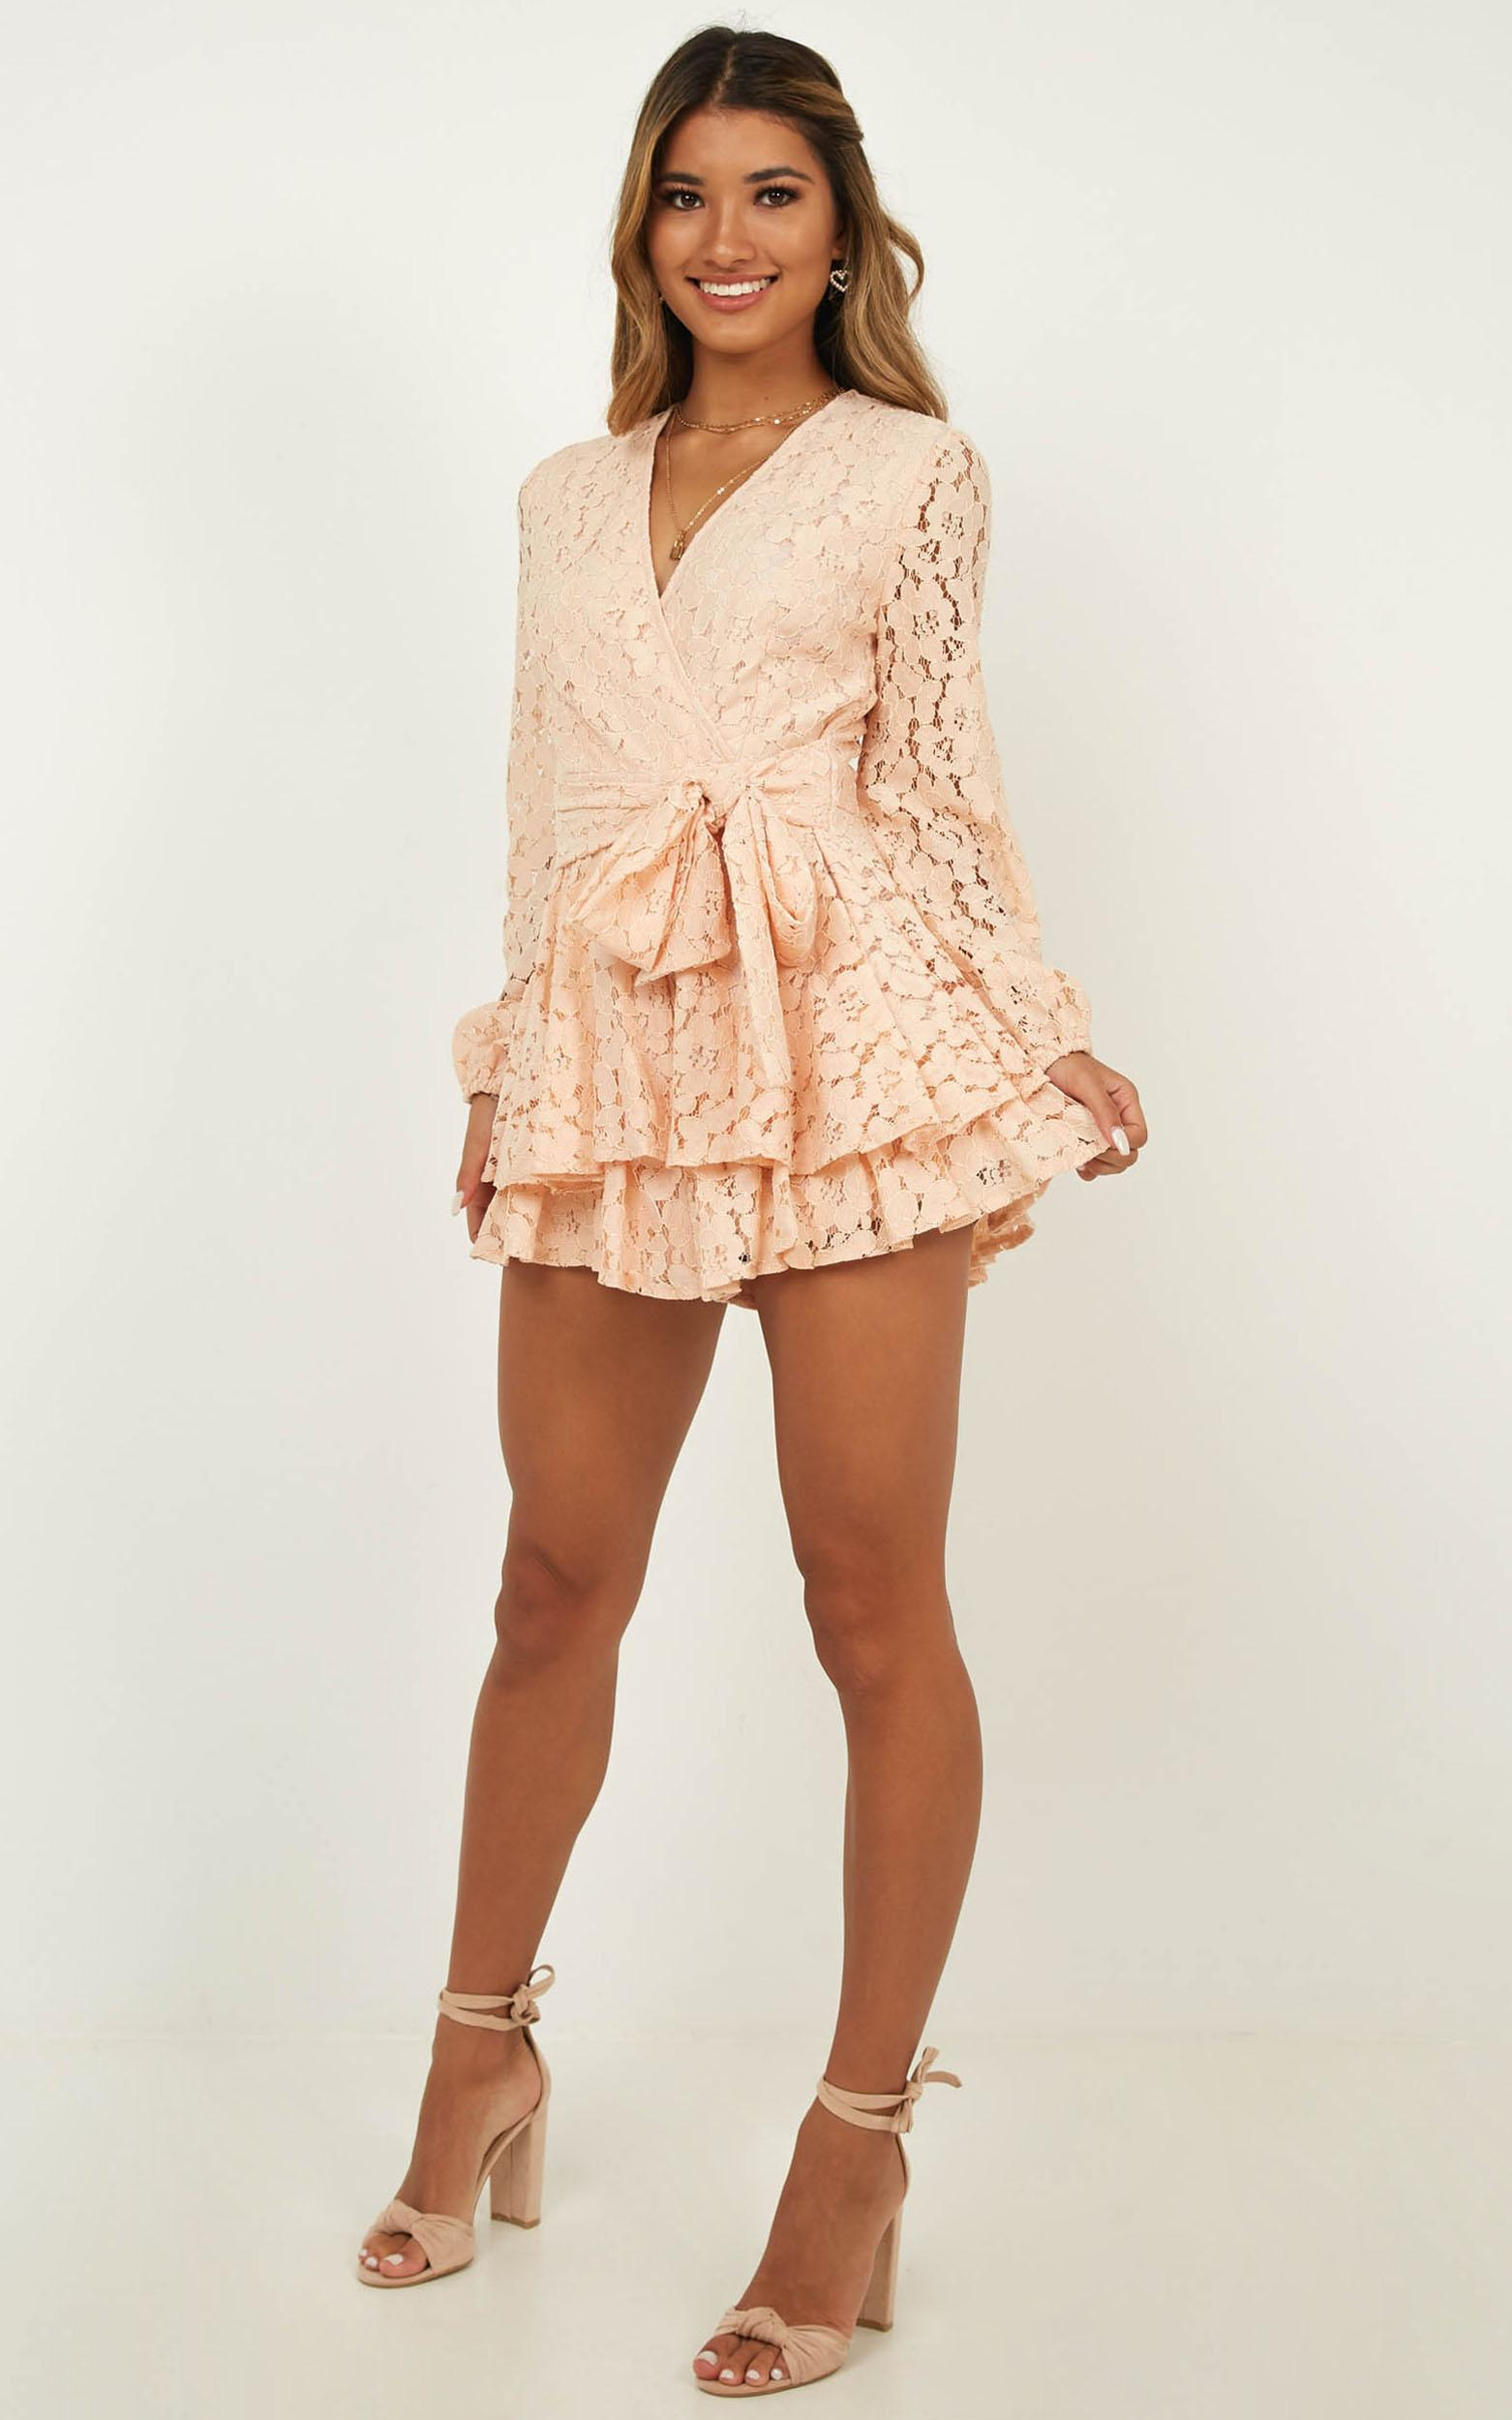 Communal Love Playsuit In Blush Lace - 4 (XXS), Blush, hi-res image number null